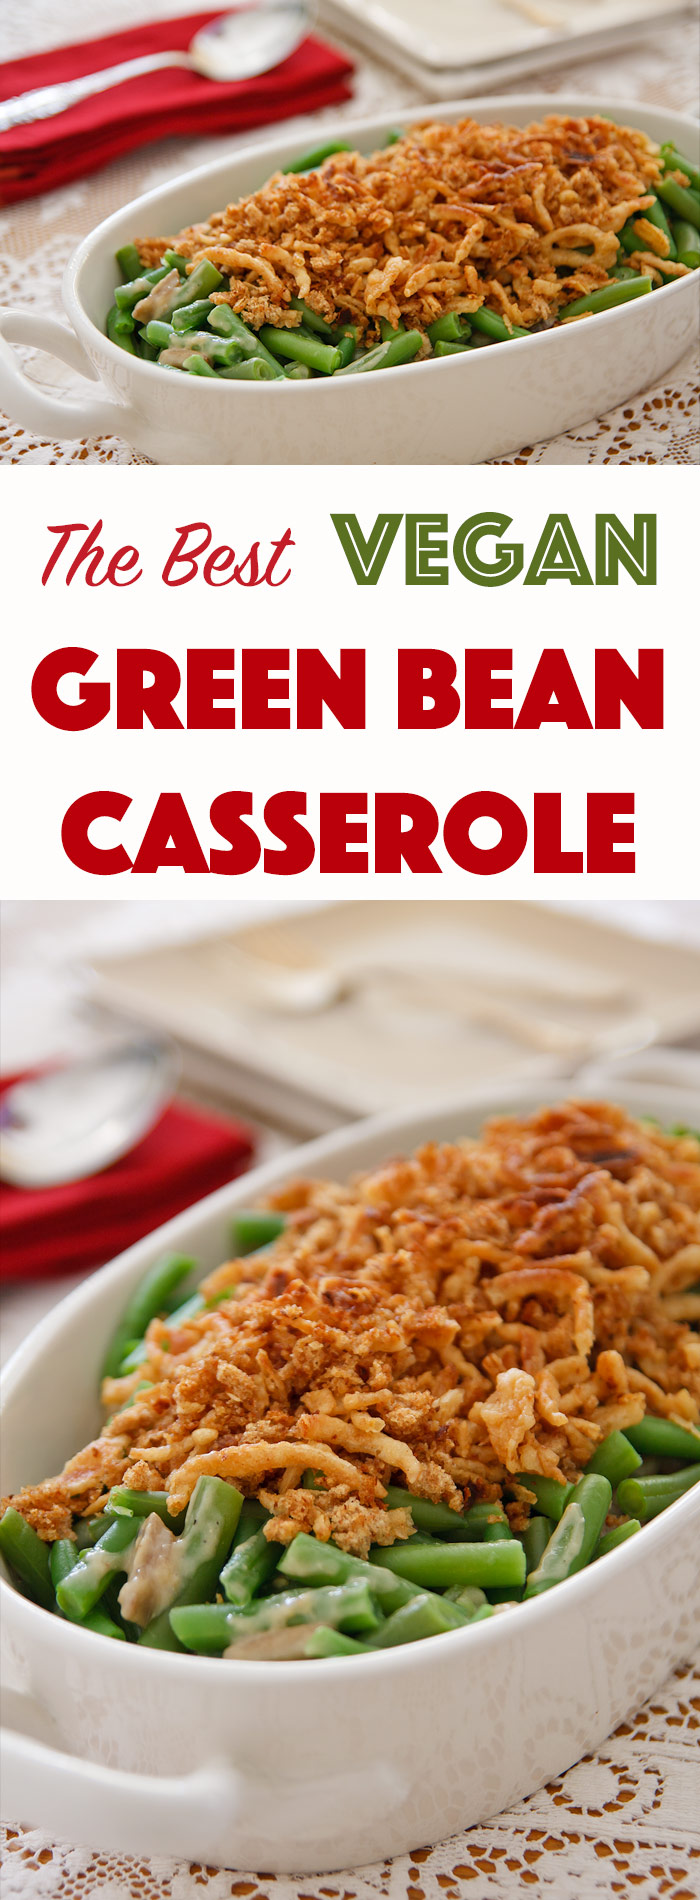 The Best Vegan Green Bean Casserole: This is absolutely the freshest tasting green bean casserole, and it just so happens to be vegan. Perfect for the holidays! #thanksgiving #vegan #wfpb #christmas #recipes